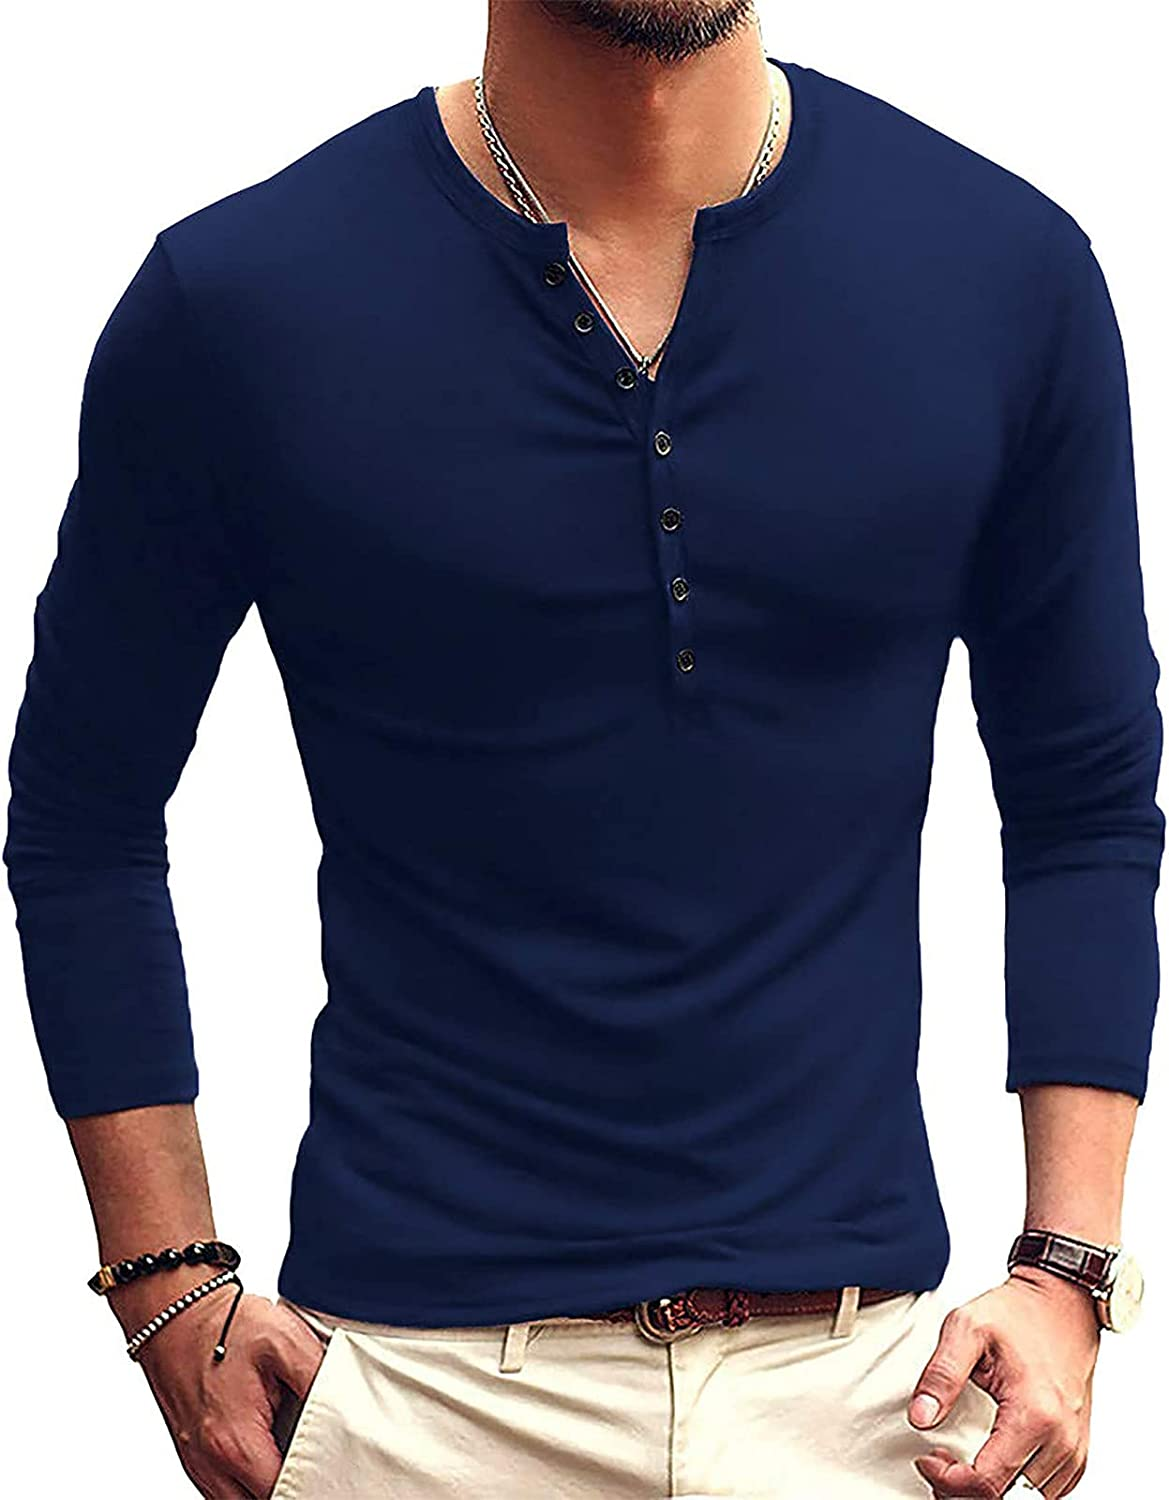 Bravetoshop Men's Casual Slim Fit Long Sleeve Henley T-Shirts Casual Cotton Tee Shirts Athletic Classic Tops